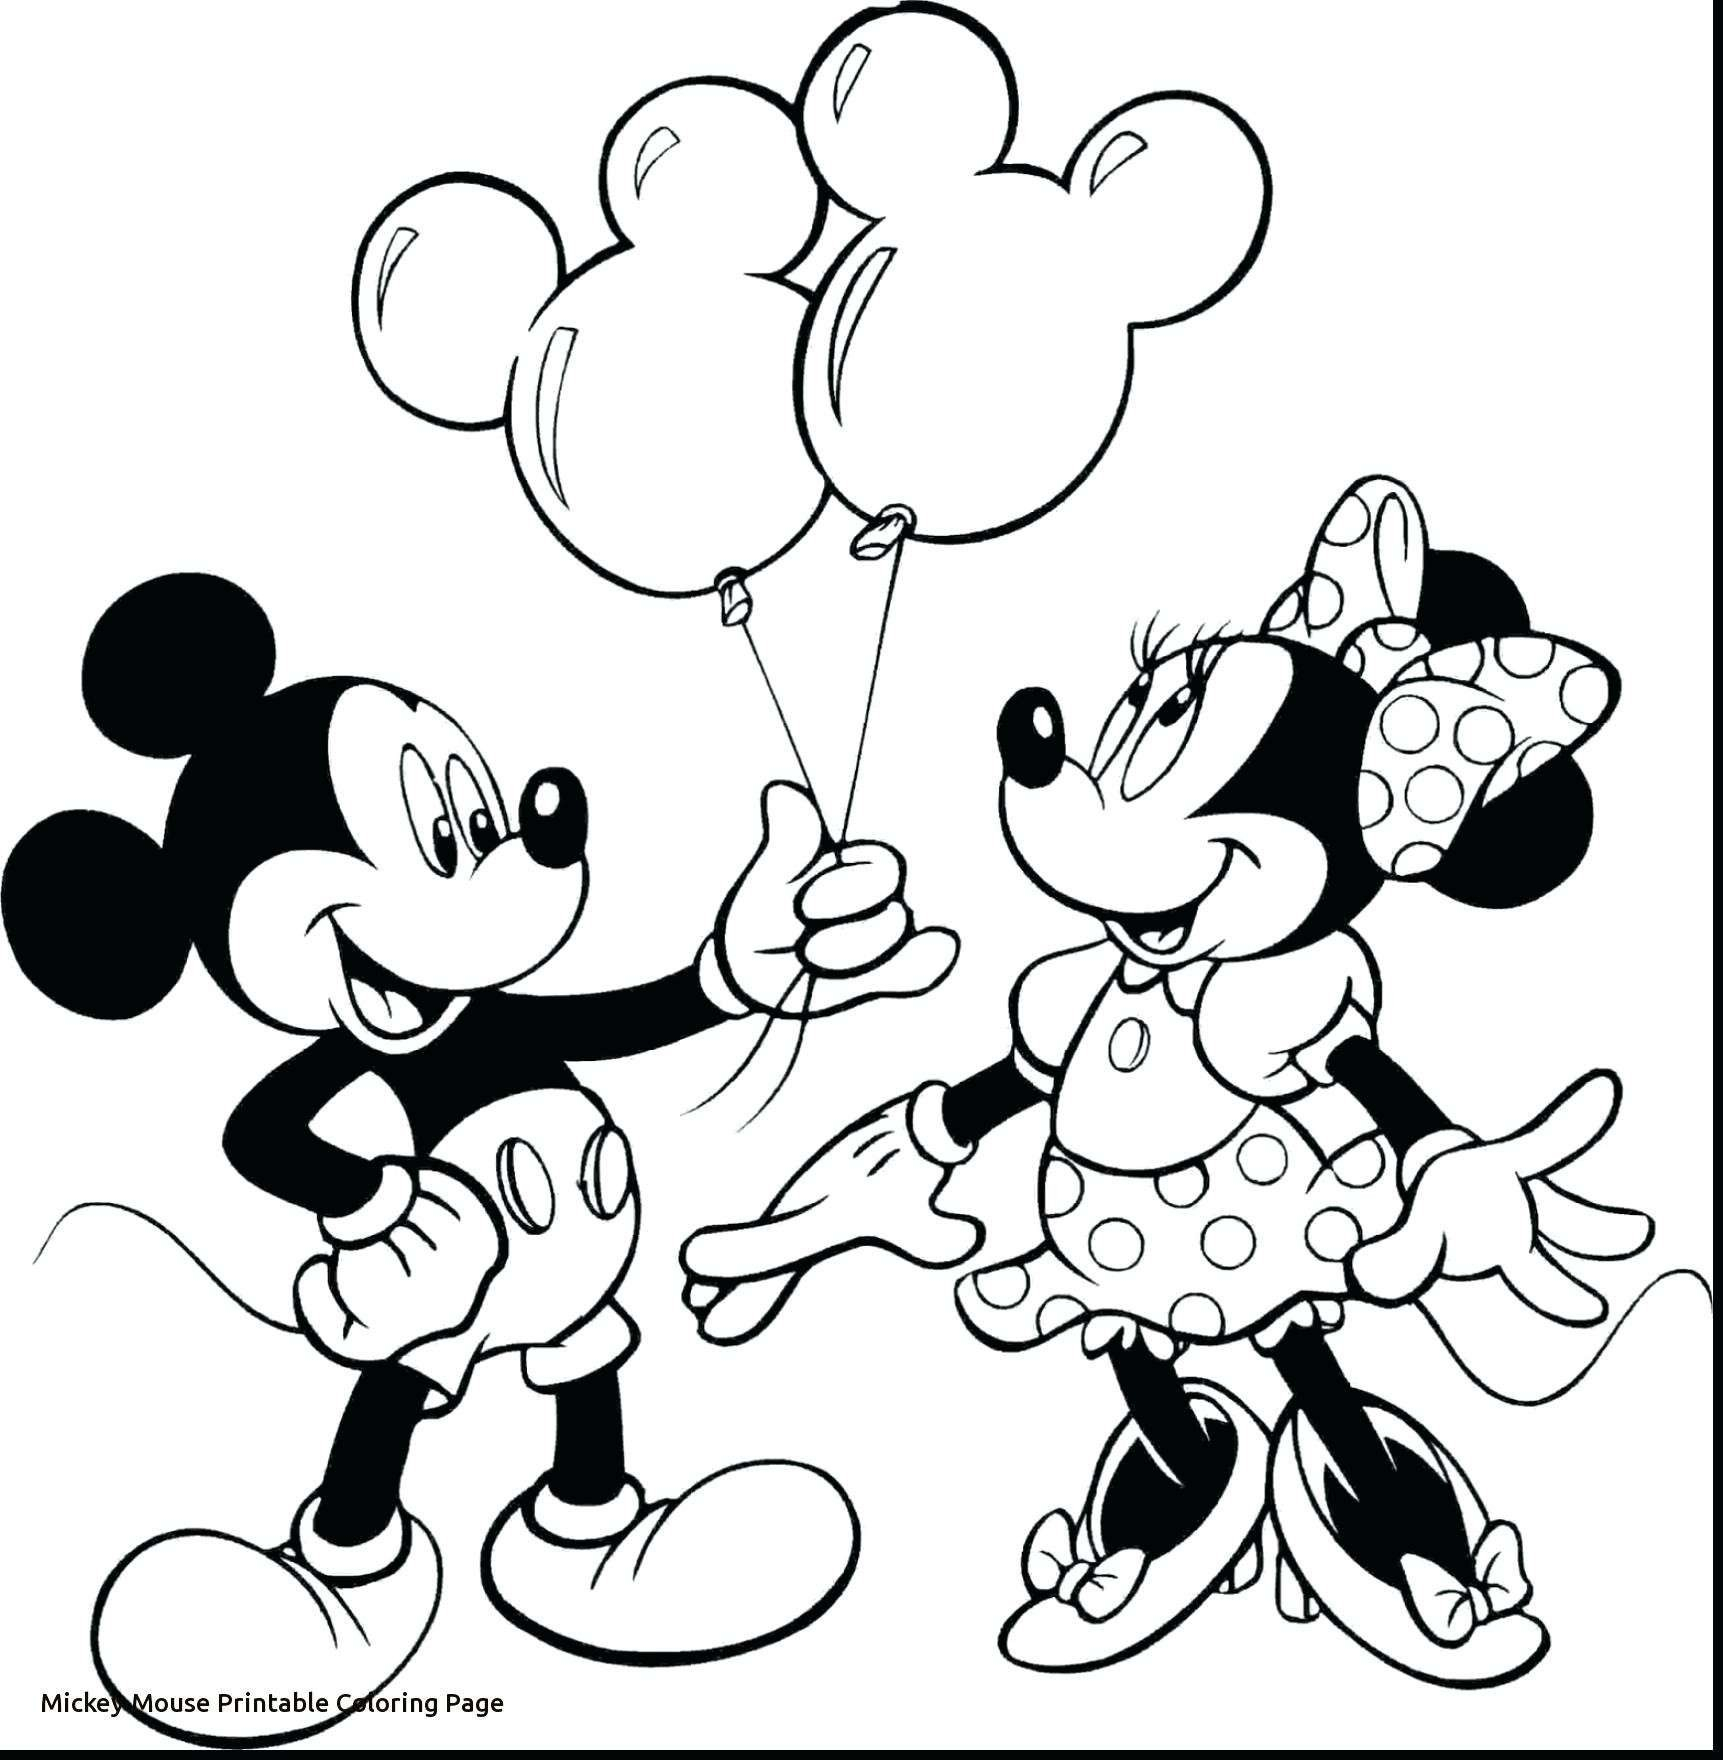 Mickey Mouse Christmas Coloring